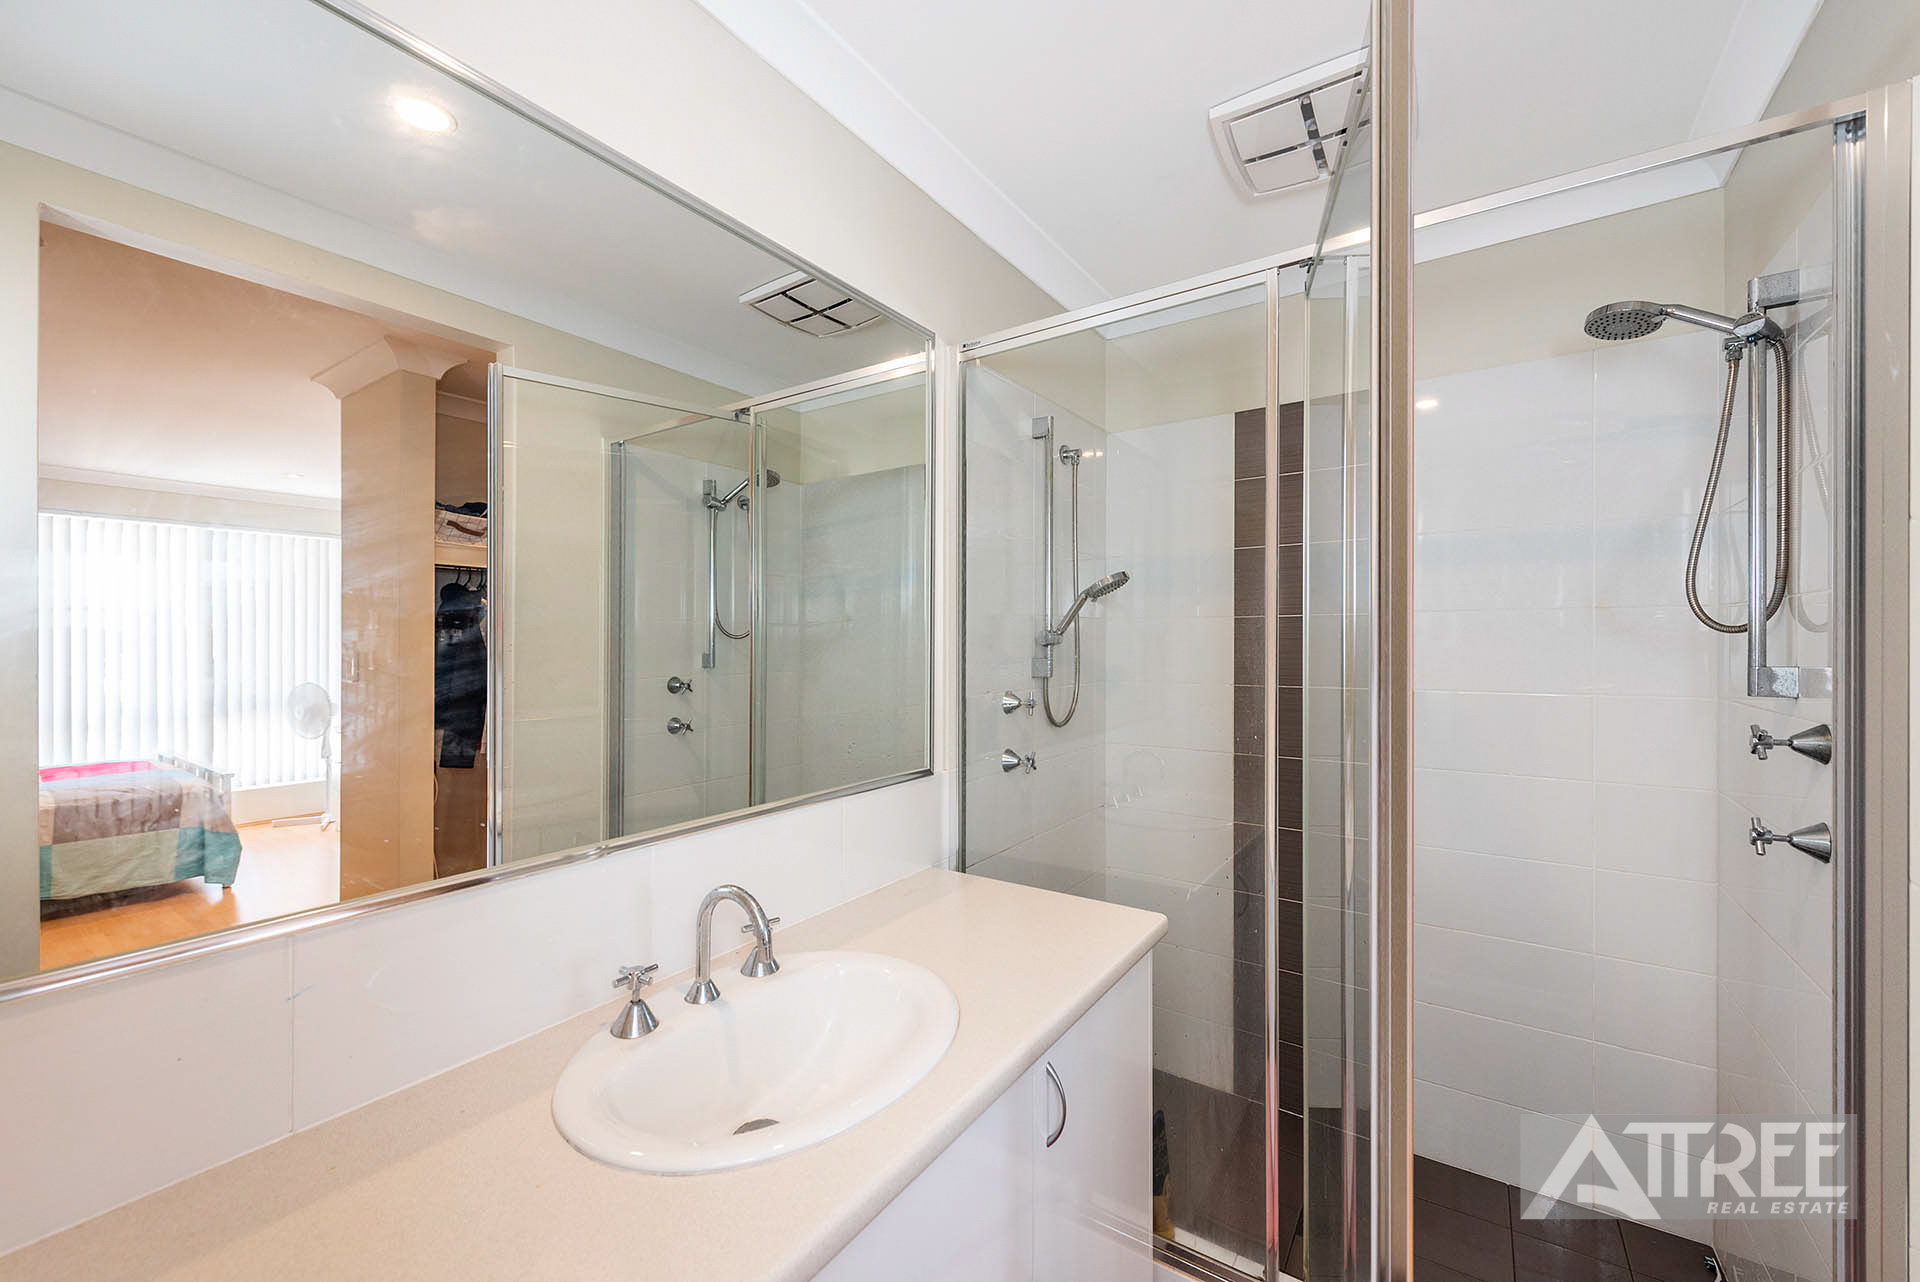 Property for sale in HARRISDALE, 49 Pyramid Road : Attree Real Estate